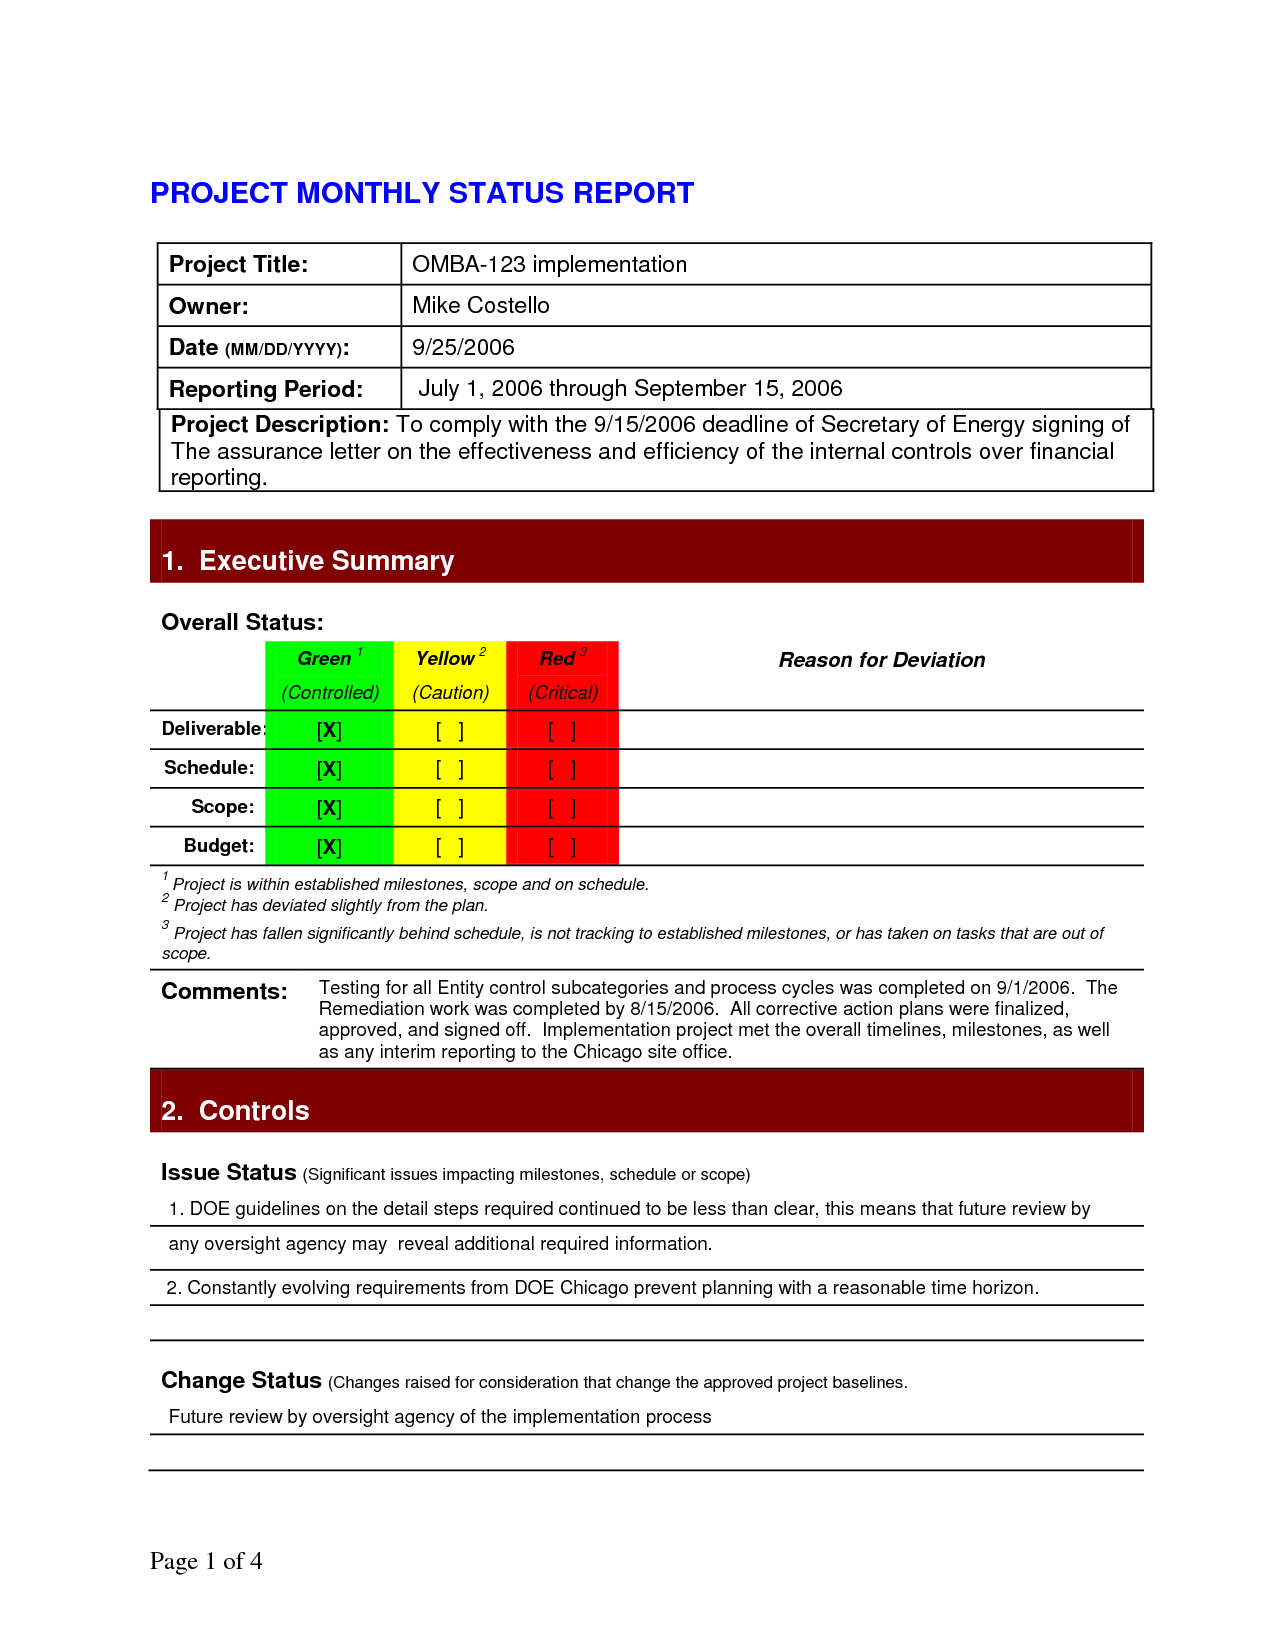 Pinlesedi Matlholwa On Templates | Project Status Report Pertaining To Project Daily Status Report Template